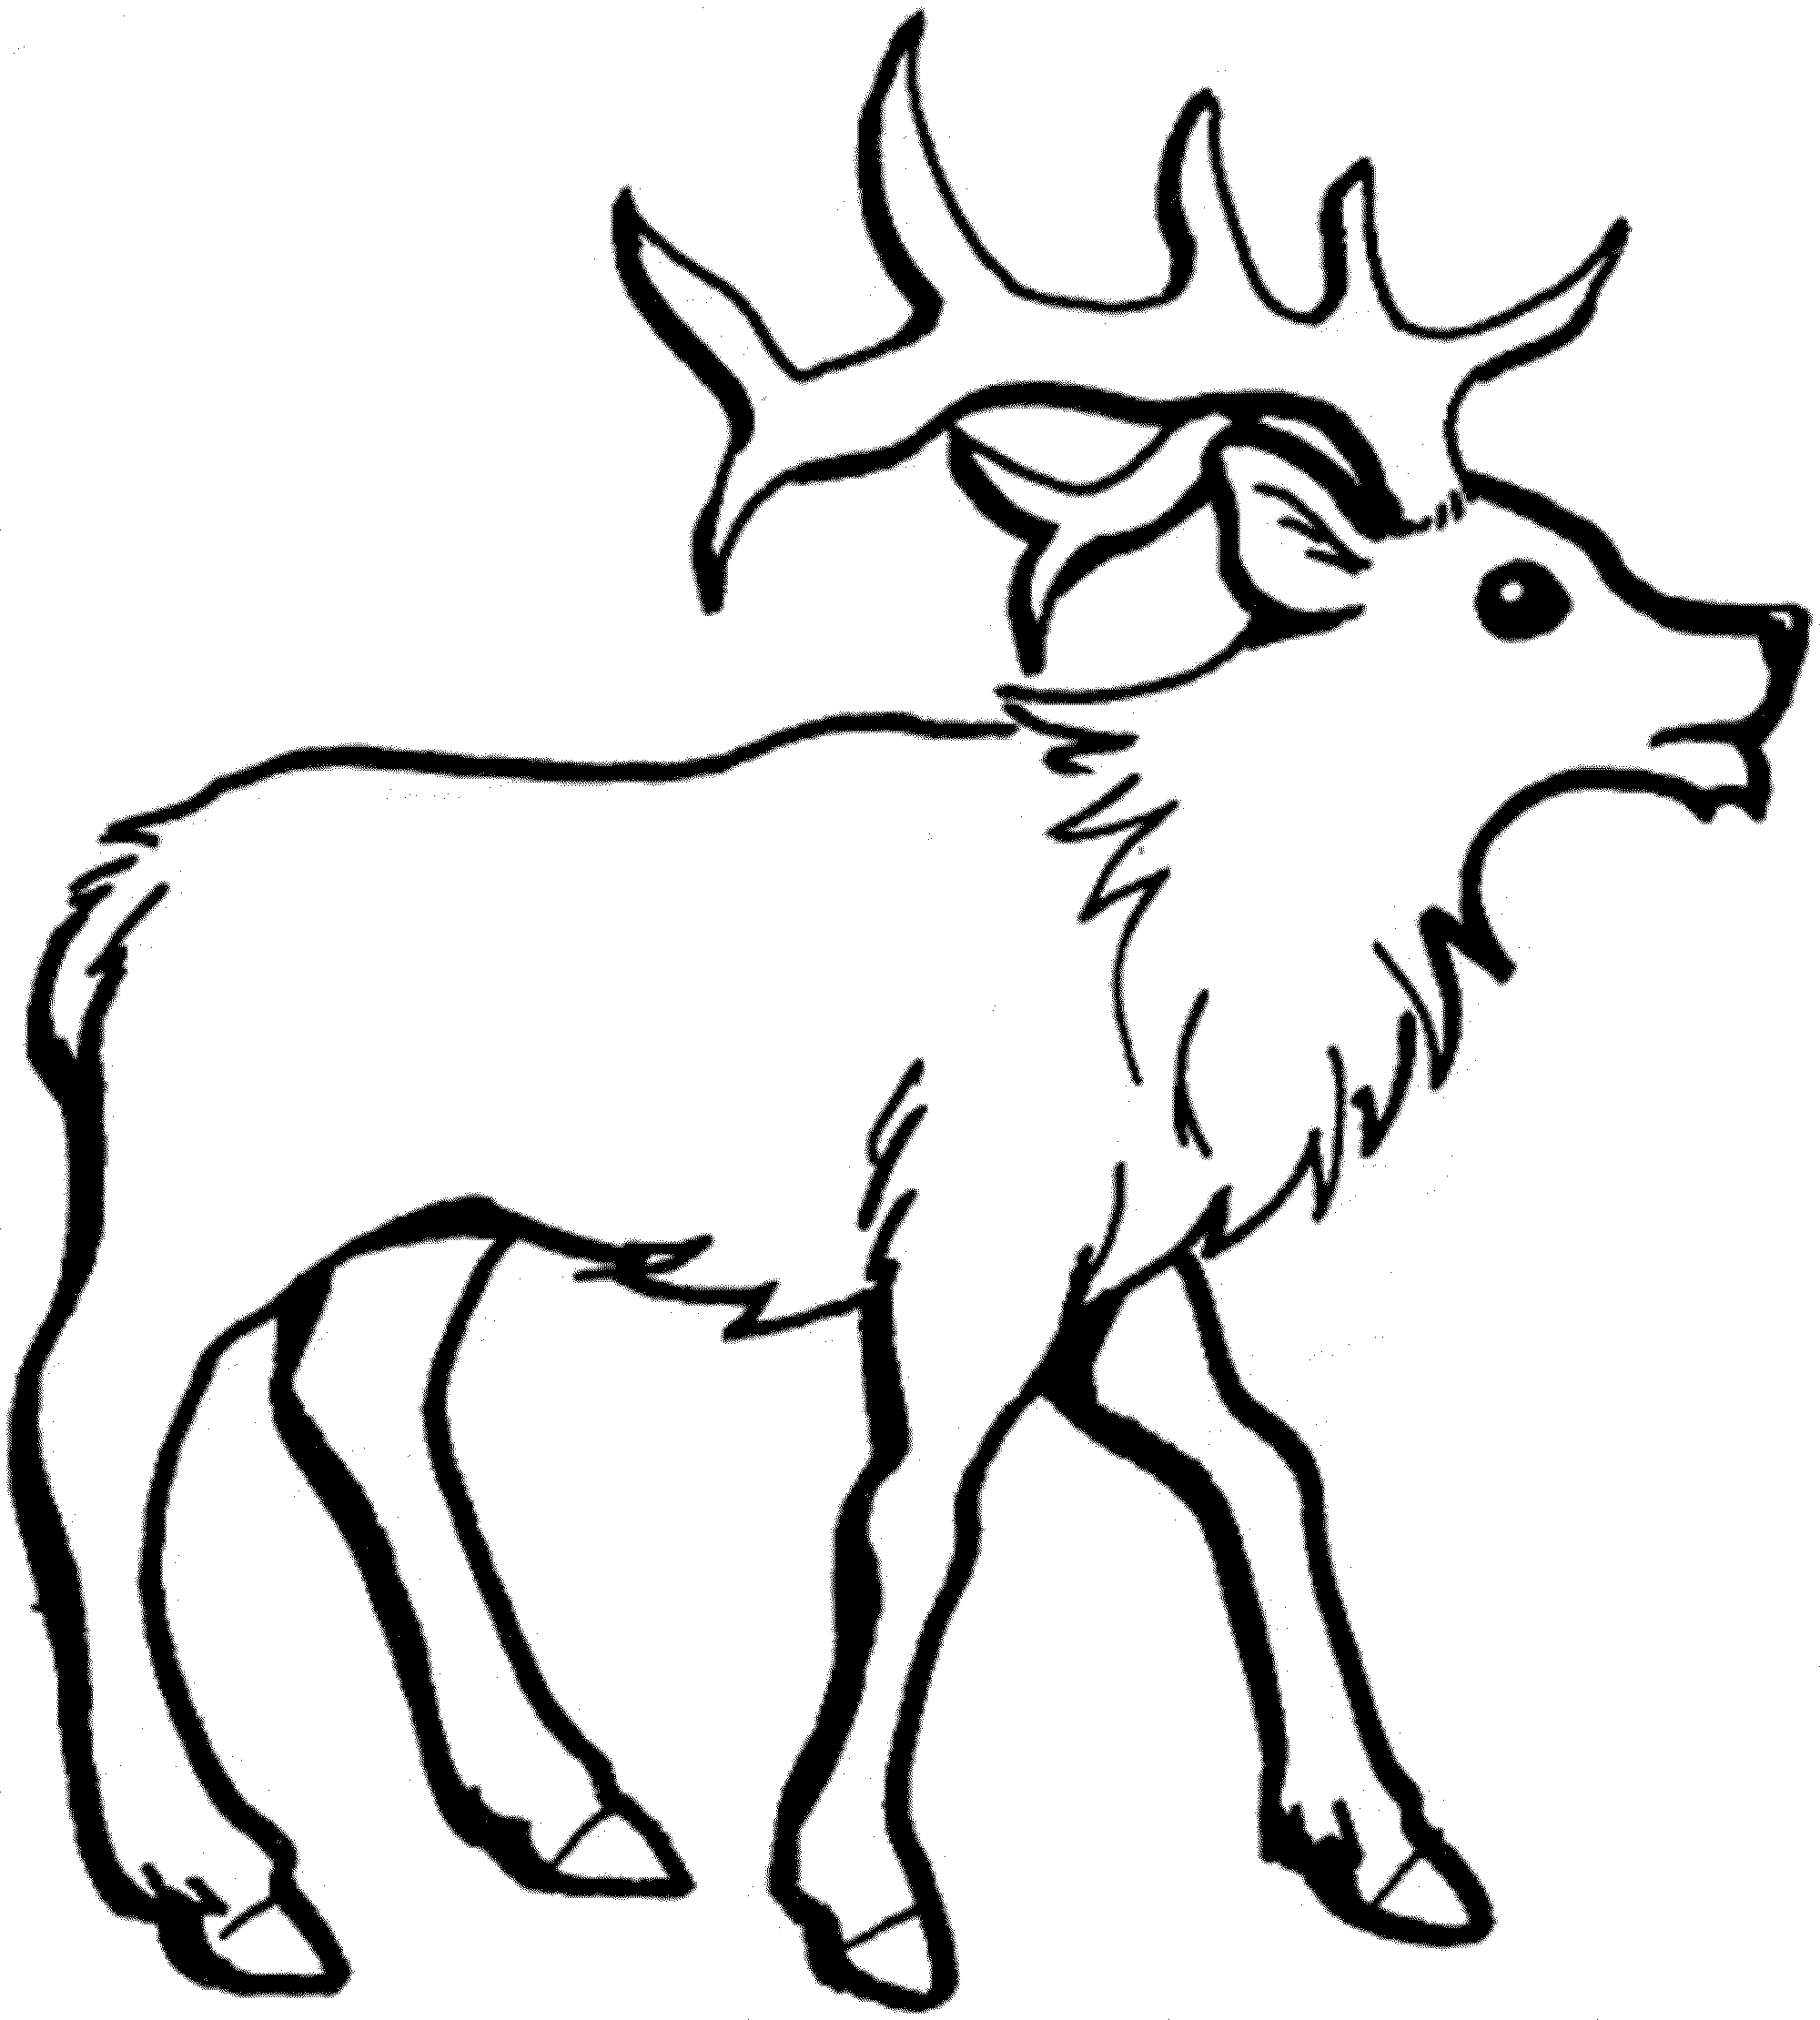 picture about Printable Reindeer Antler referred to as Reindeer Antlers Drawing at  No cost for